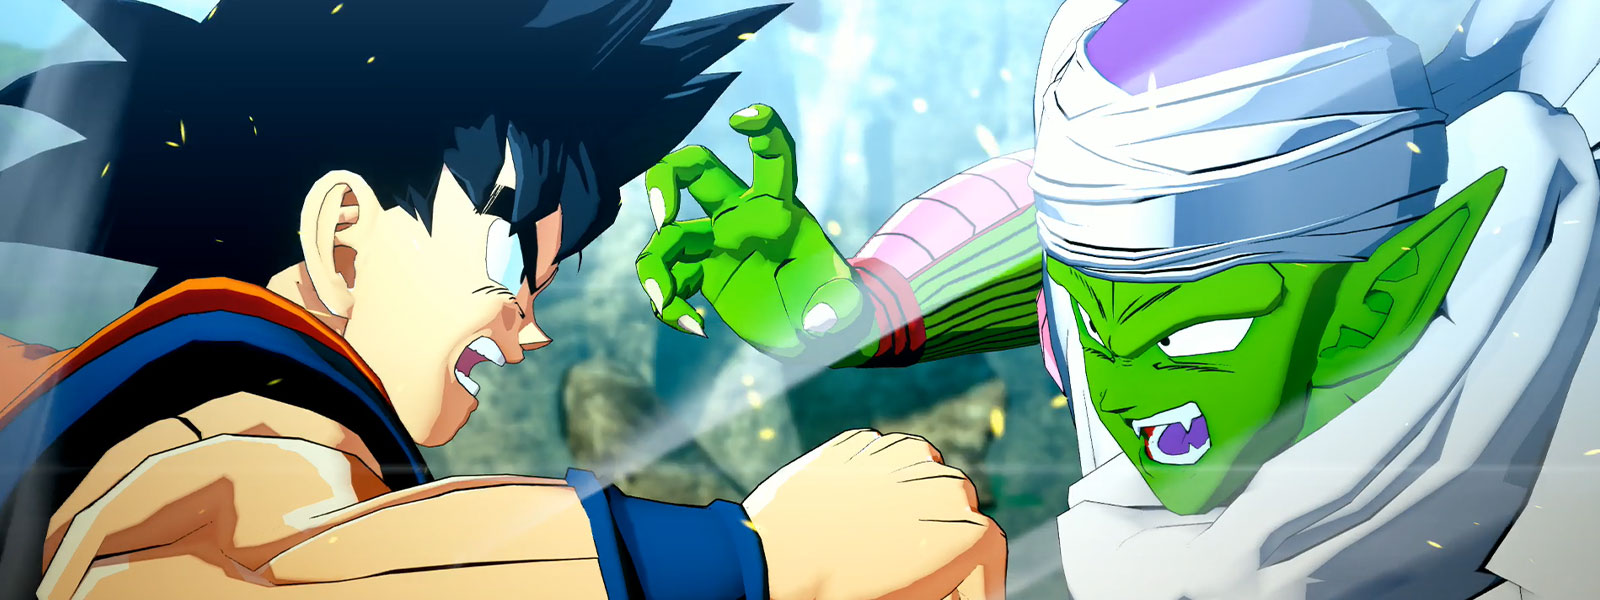 Goku and Piccolo look angrily at each other as they are engaged in battle